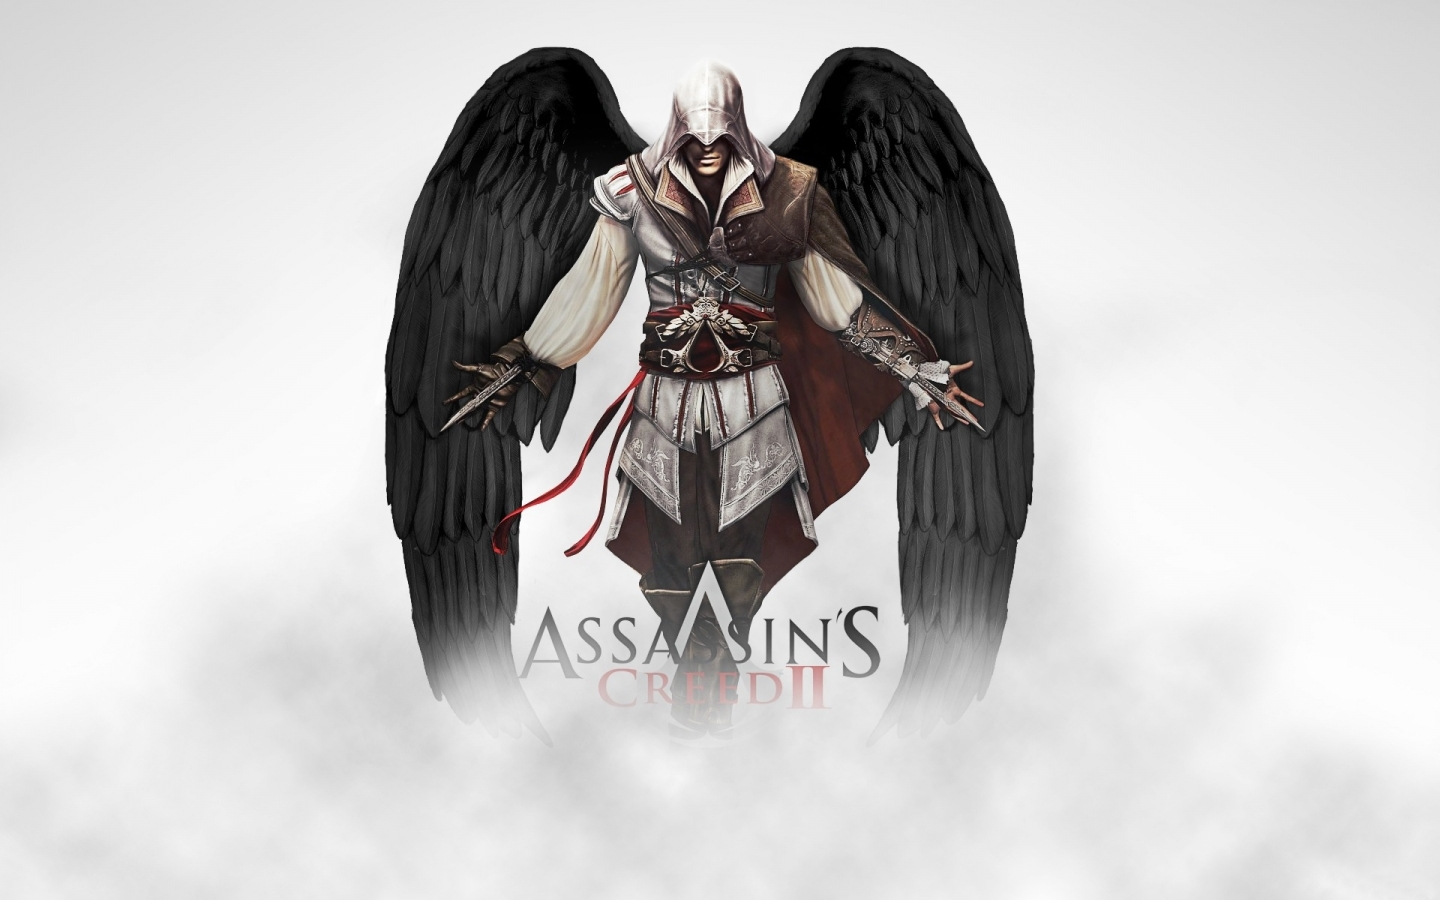 15441 download wallpaper Games, Assassin's Creed screensavers and pictures for free